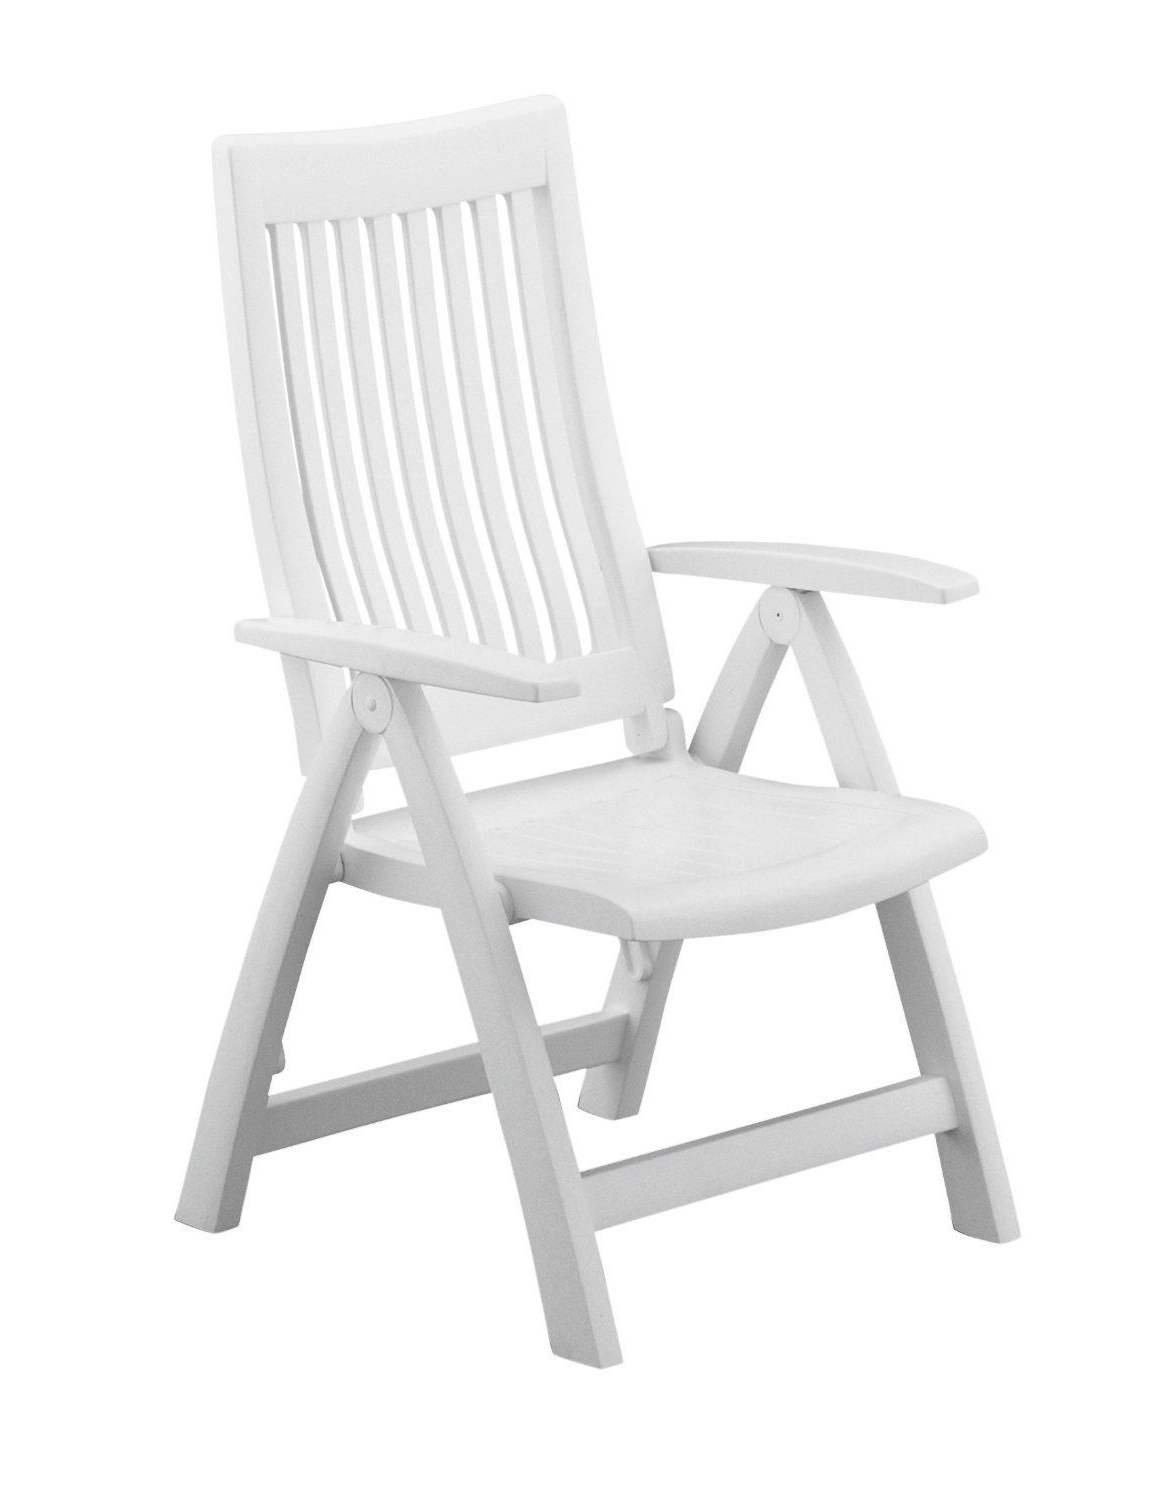 Favorite Amazon : Kettler Roma High Back Chair : Resin Chairs : Patio Inside Kettler Chaise Lounge Chairs (View 7 of 15)